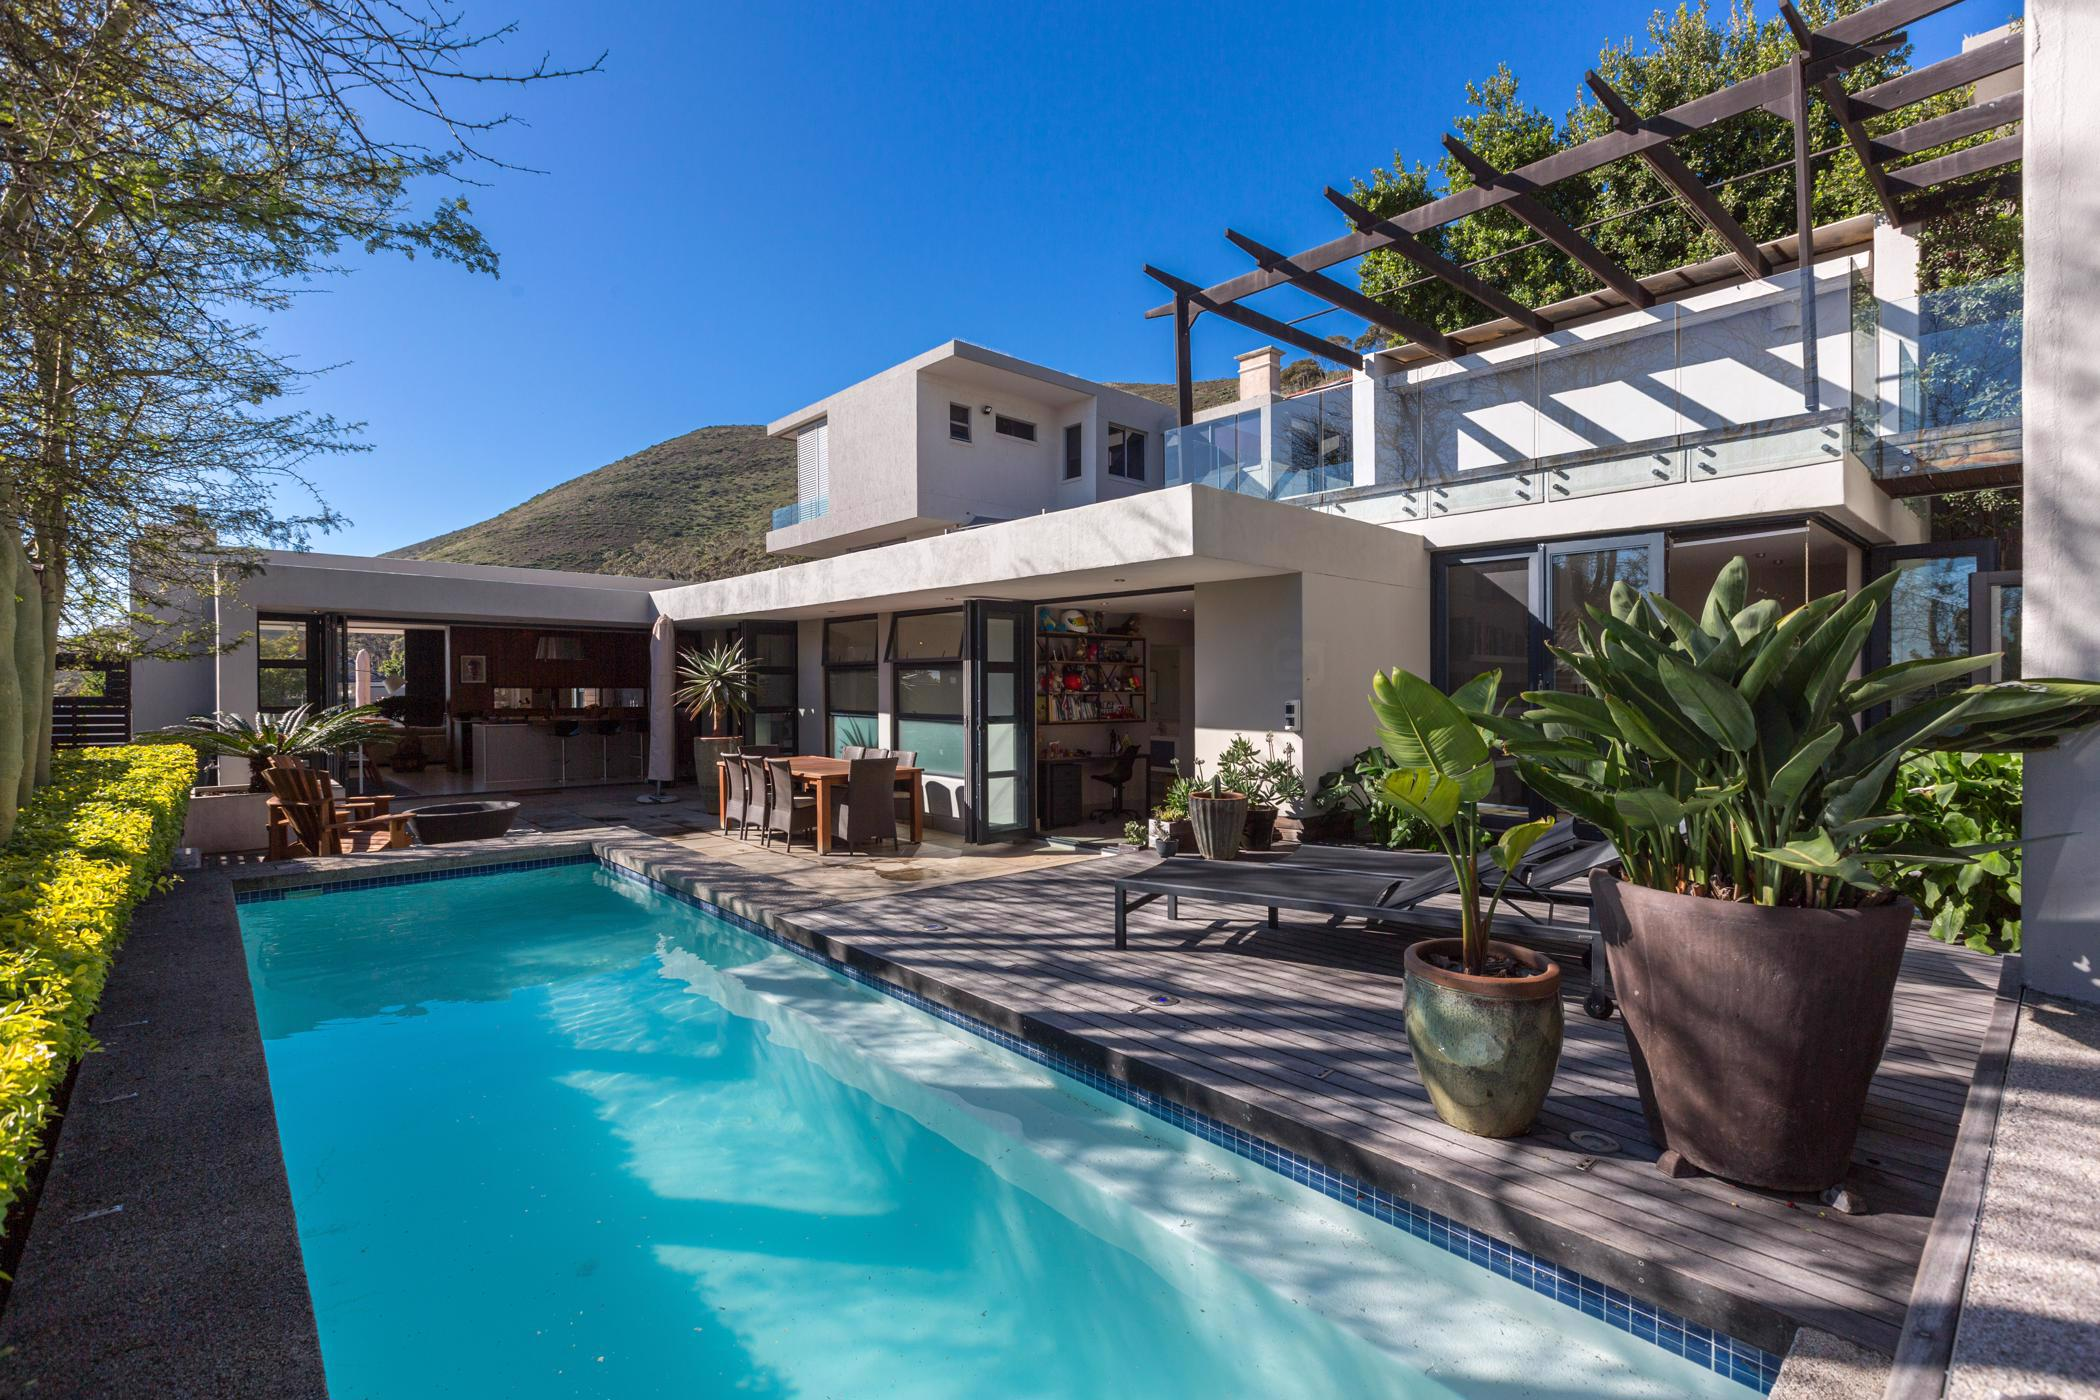 4 bedroom house for sale in Fresnaye